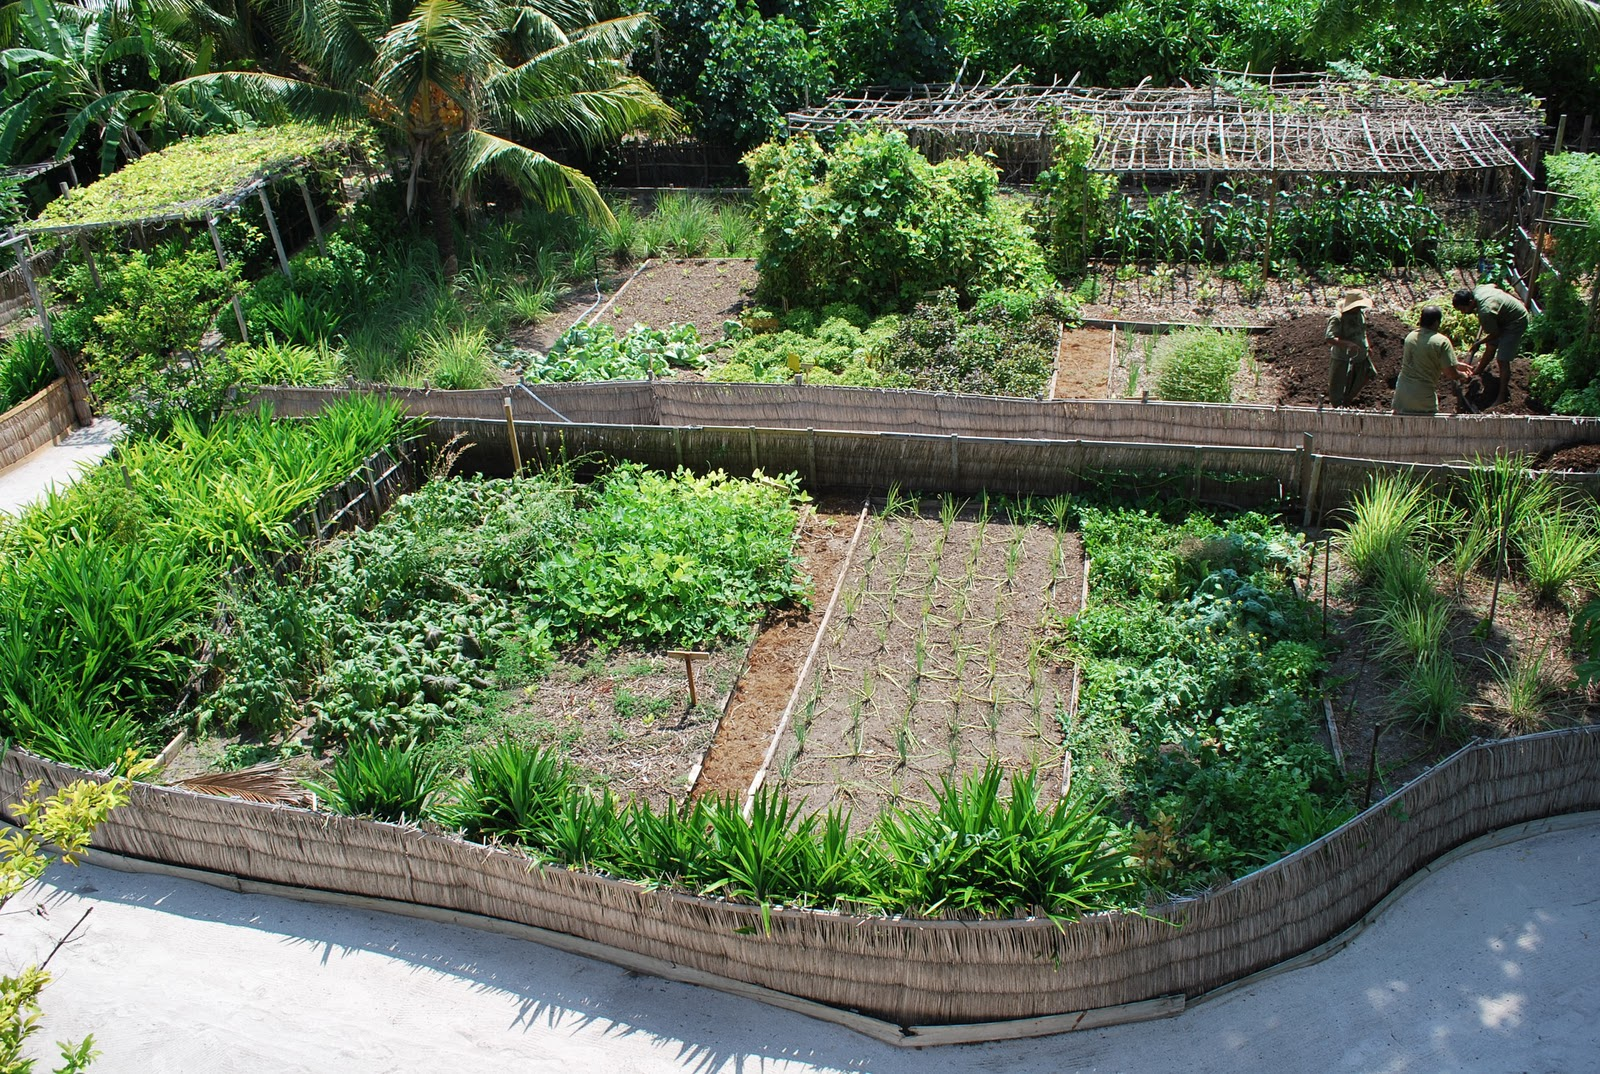 Garden design | Permaculture | Pinterest on Backyard Permaculture Design id=90947